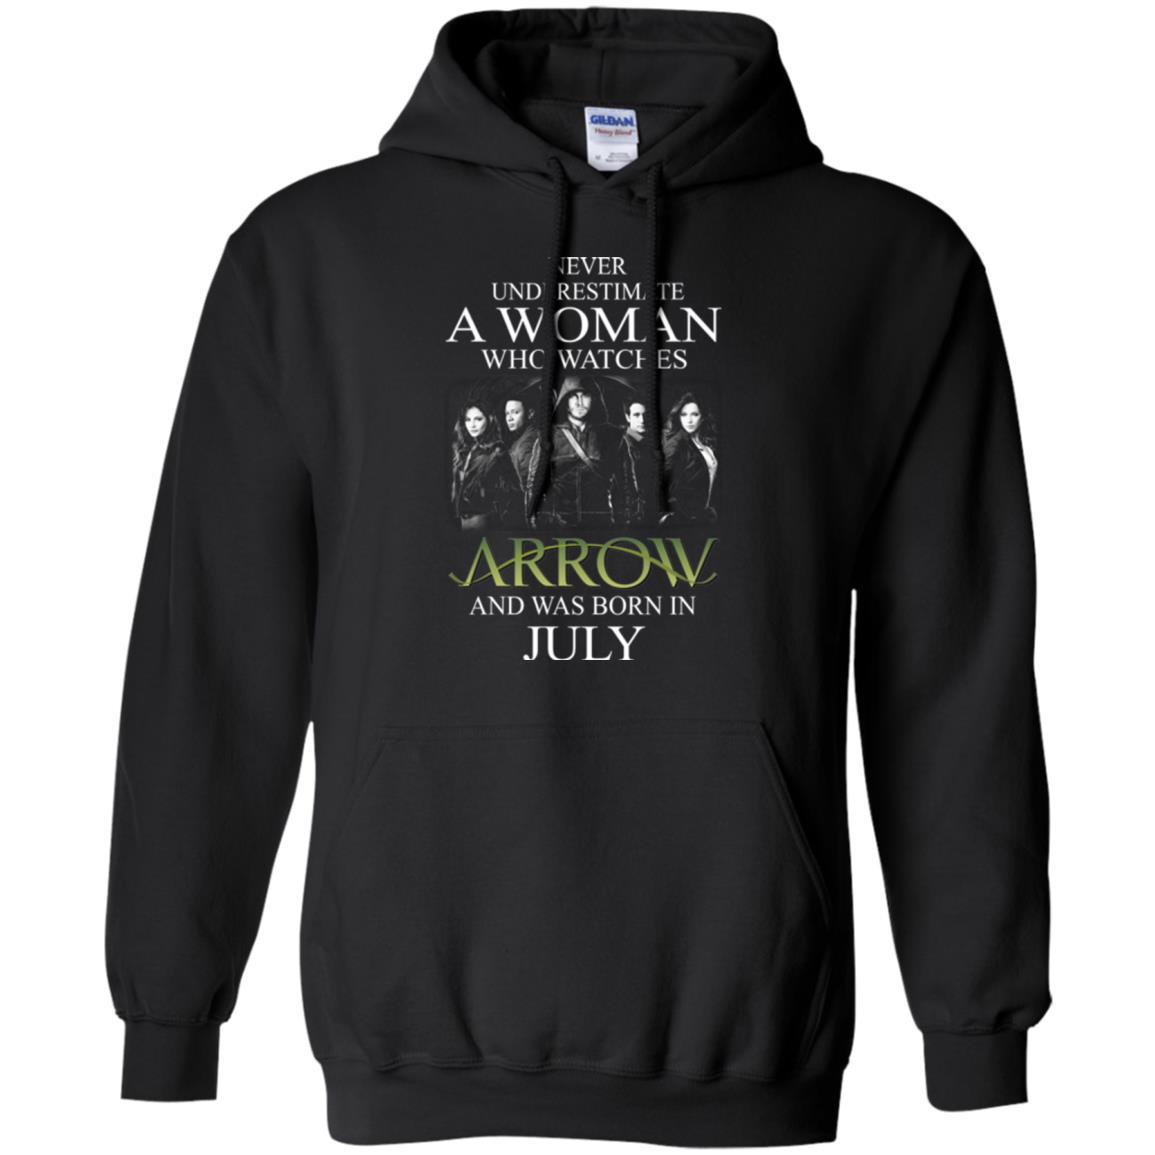 Never Underestimate A woman who watches Arrow and was born in July shirt - image 1522